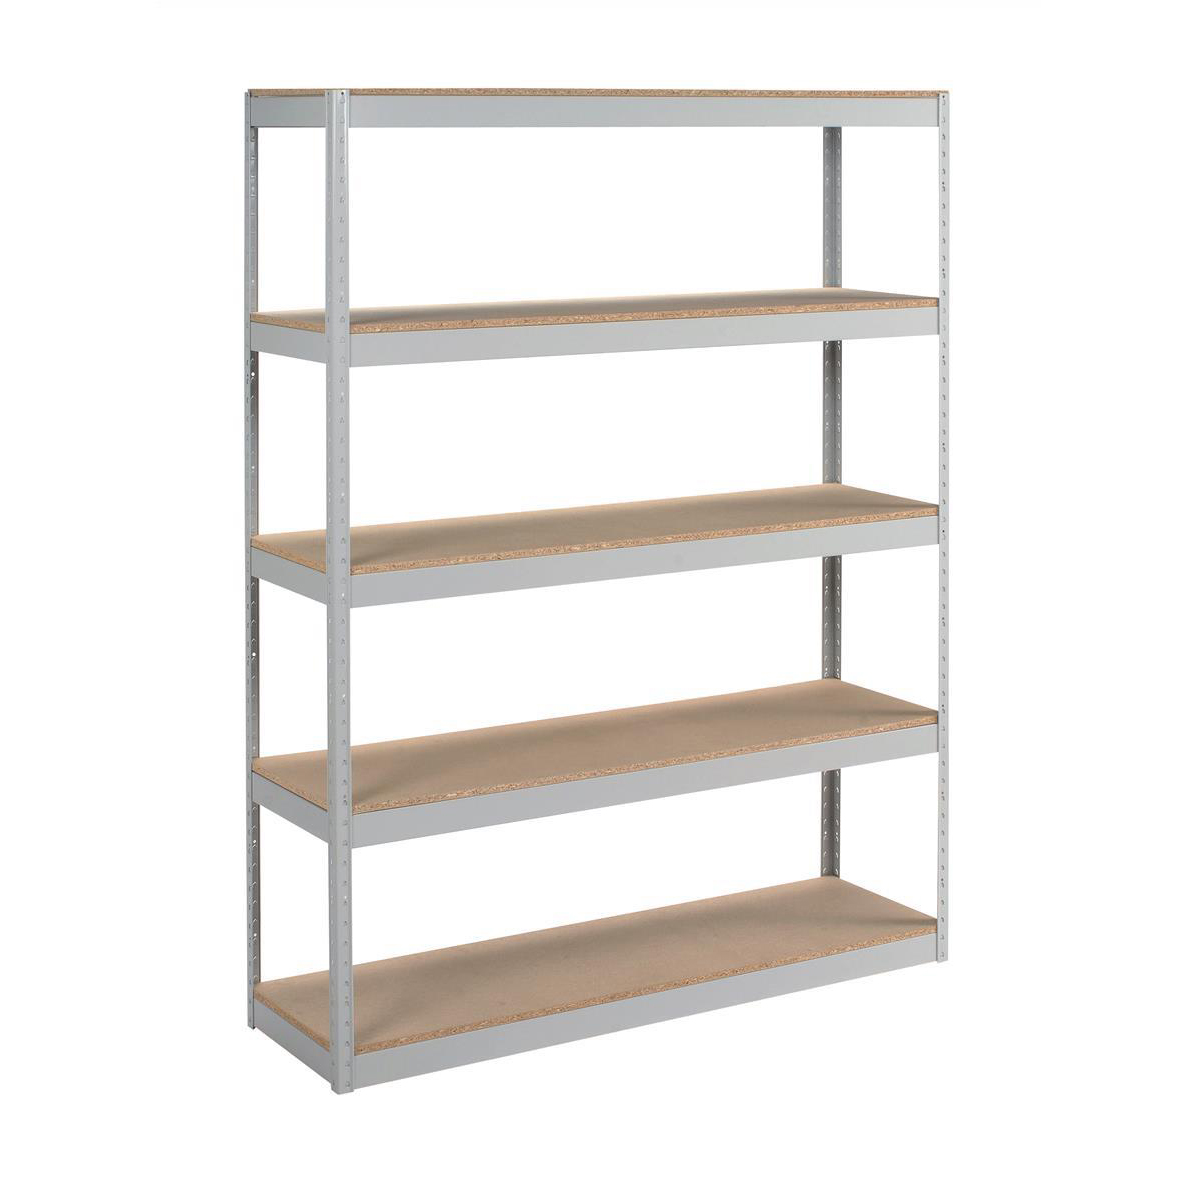 Over 1200mm High Trexus Archive Shelving Unit Heavy-duty Extra Wide 5 Shelves Capacity 100kg